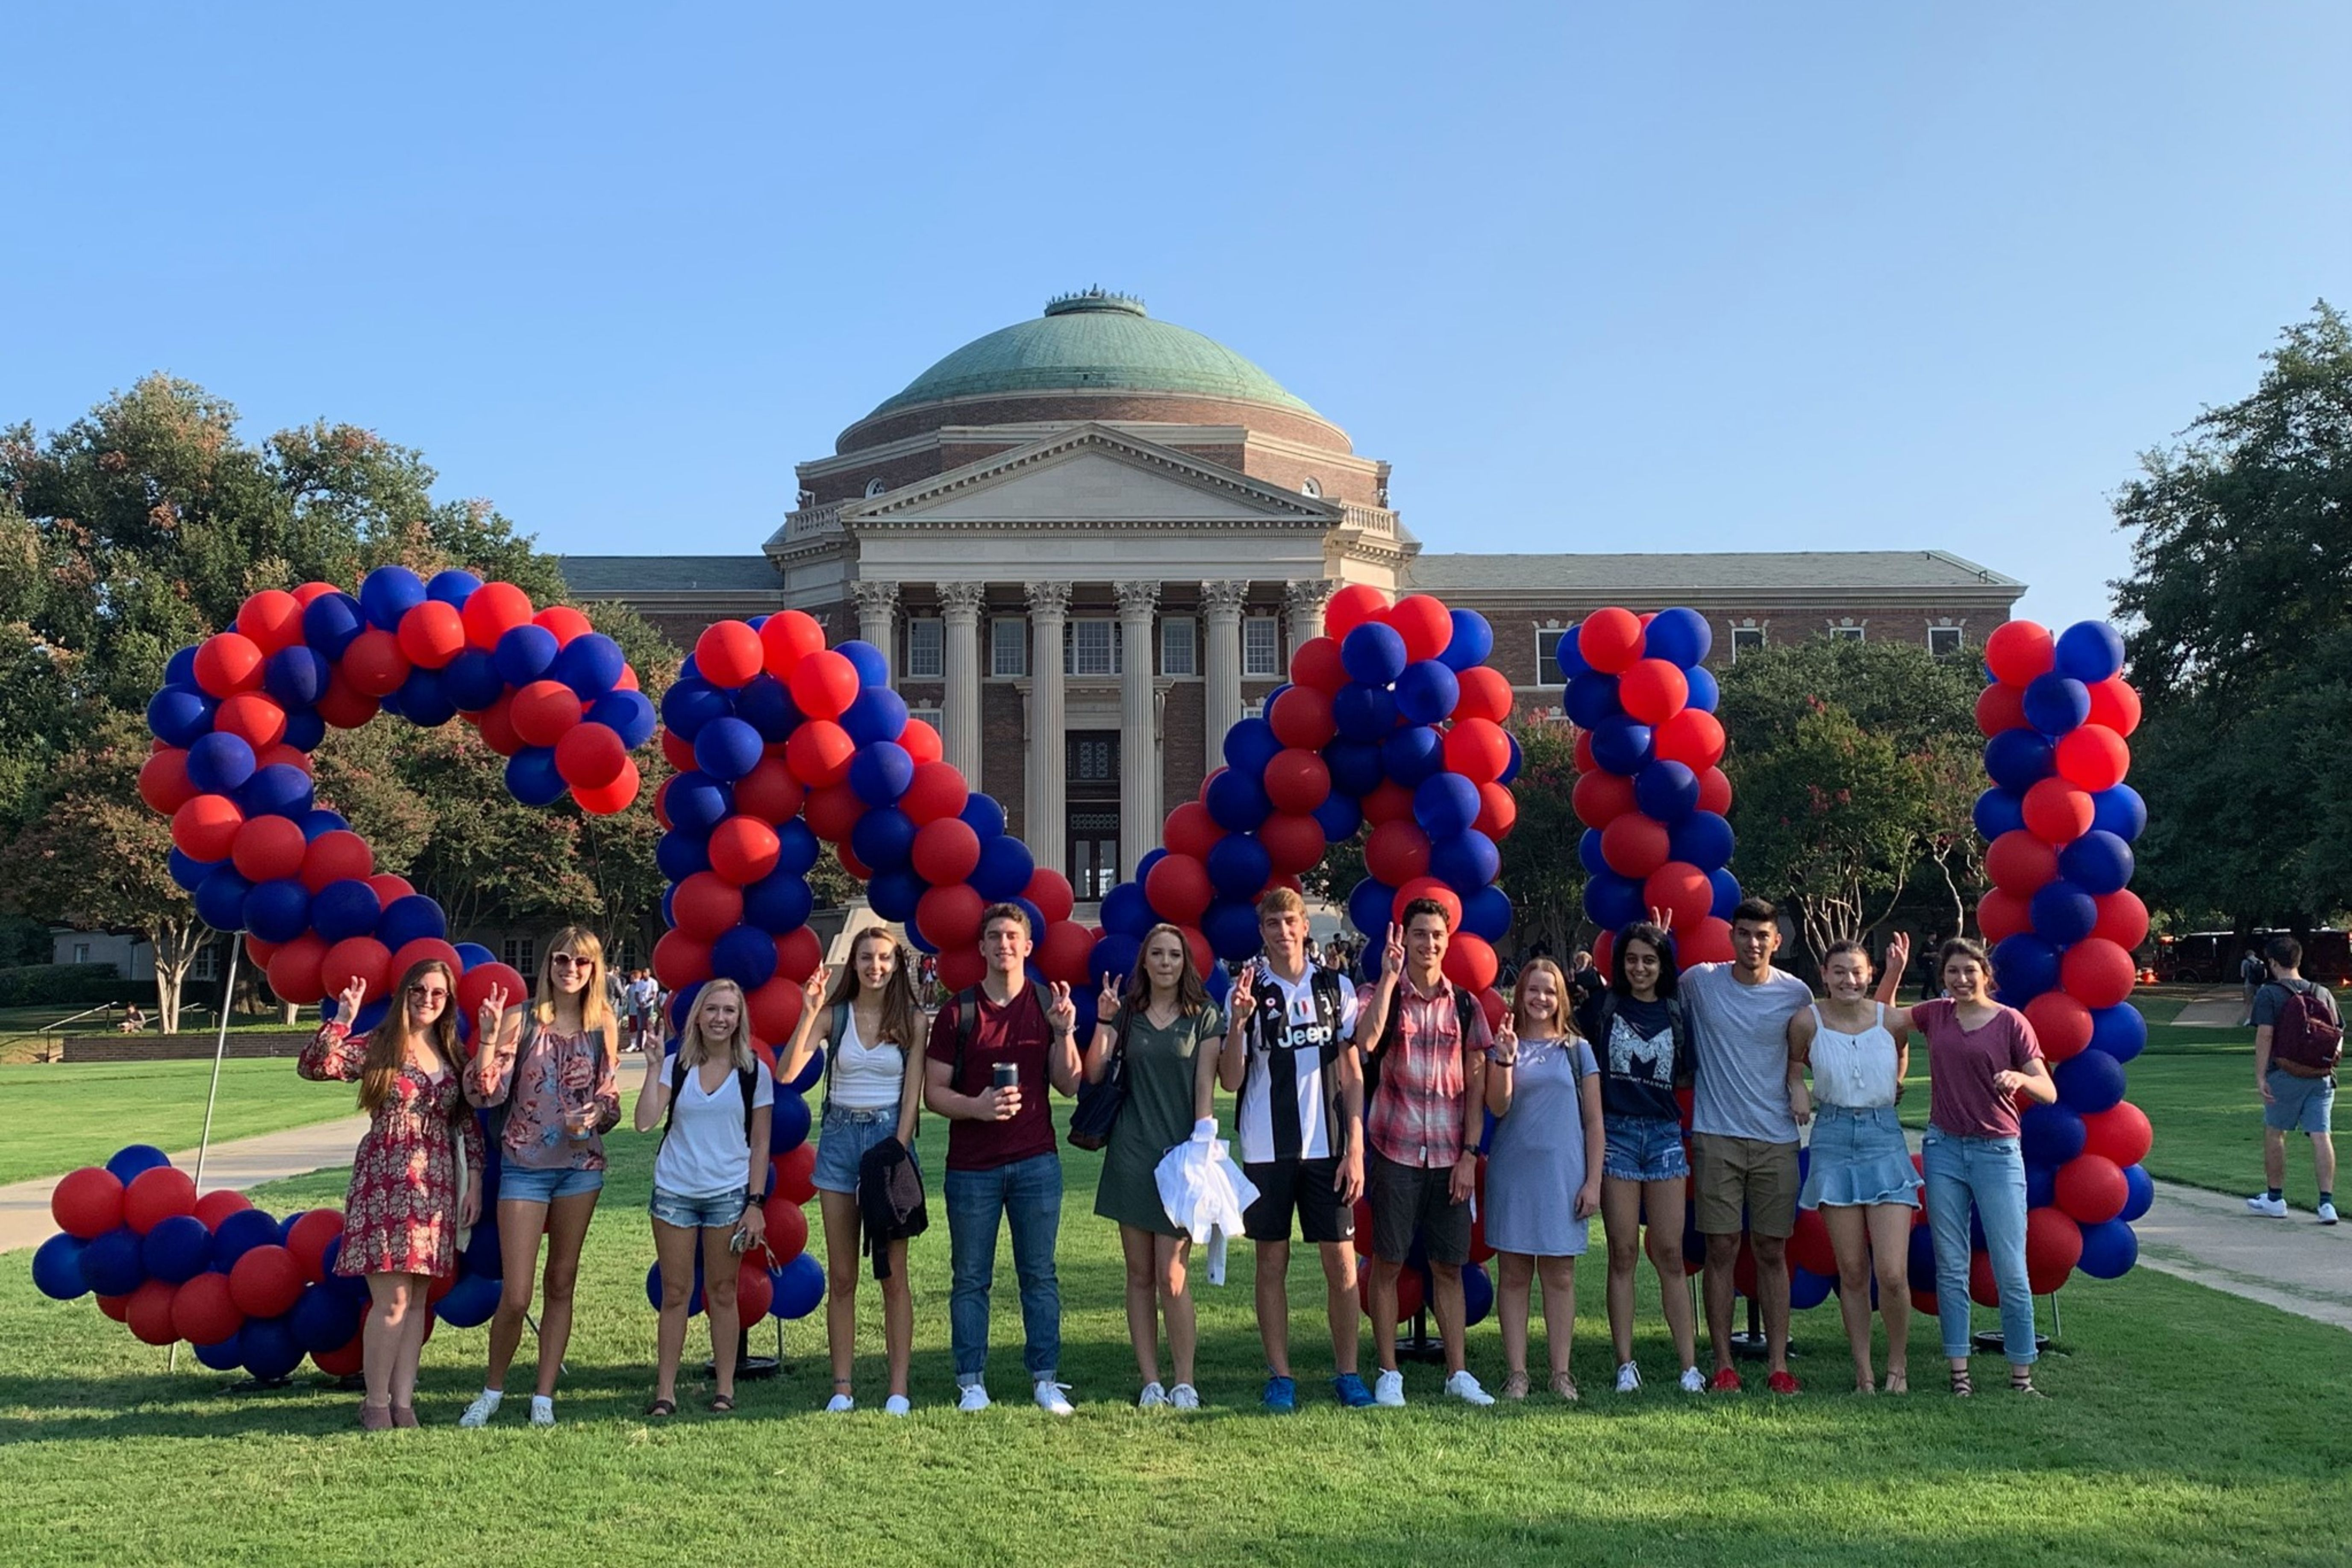 Students stand on Dallas Hall Lawn in front of red and blue SMU balloons.